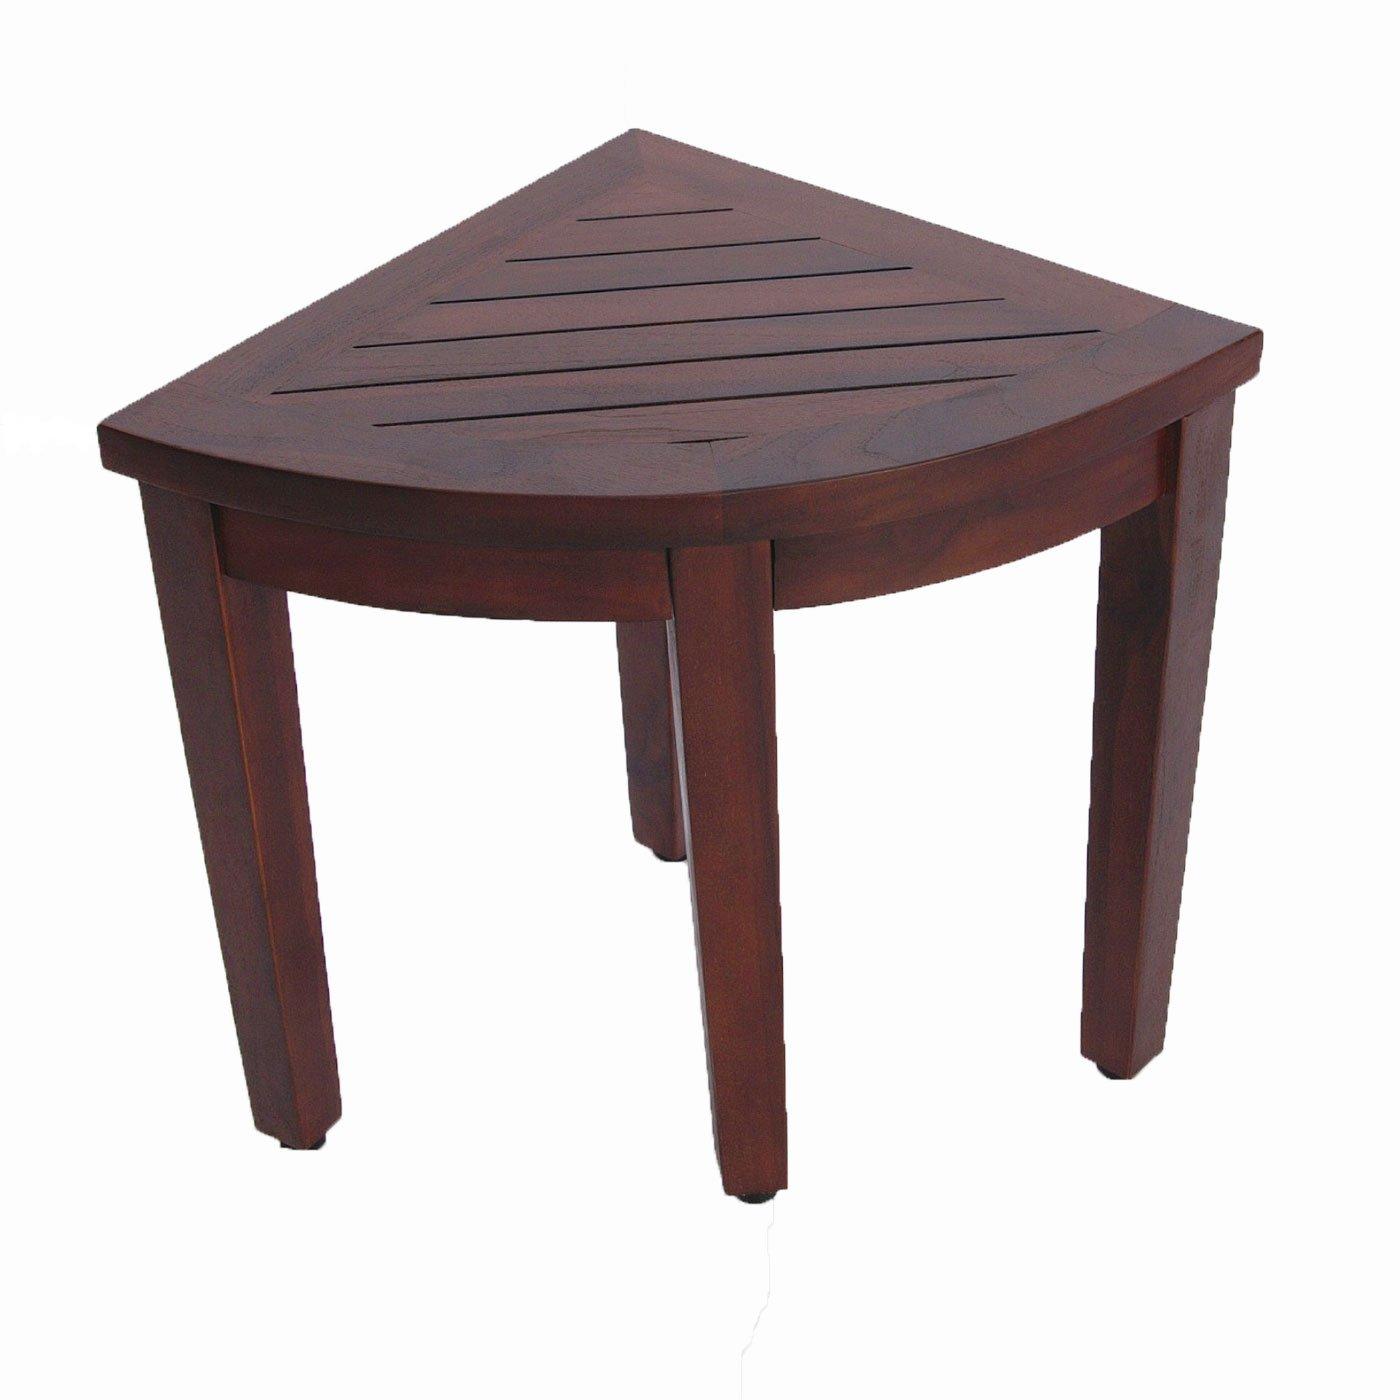 Oasis Bathroom Teak Corner Shower Seat Stool Chair Bench- Sitting, Storage, or Foot Rest